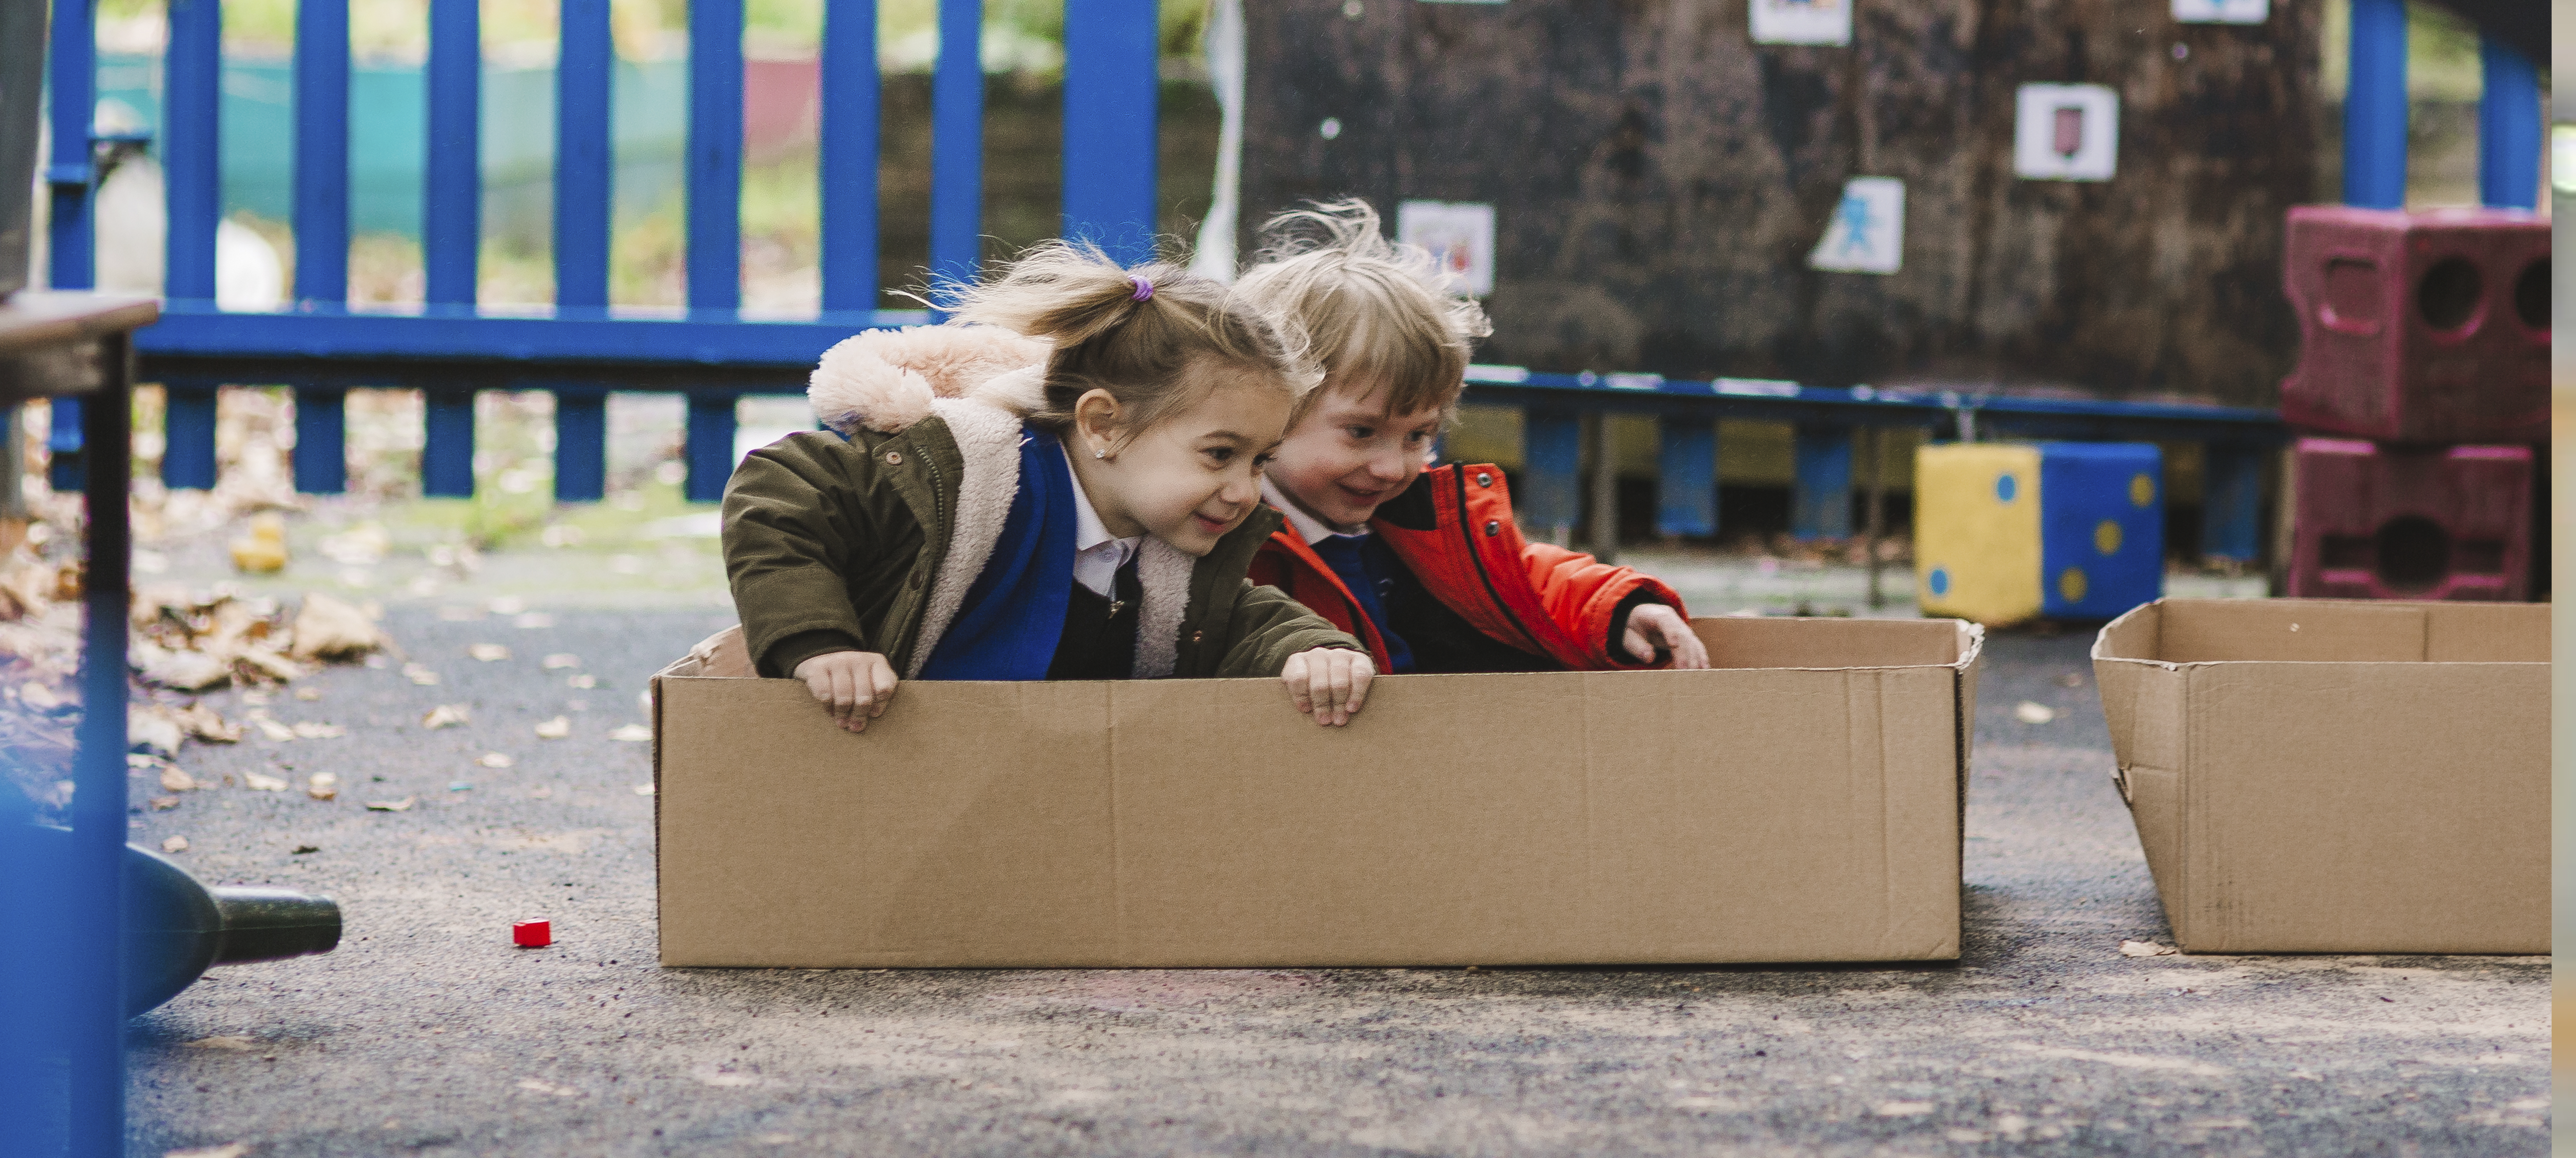 Early Years Provision